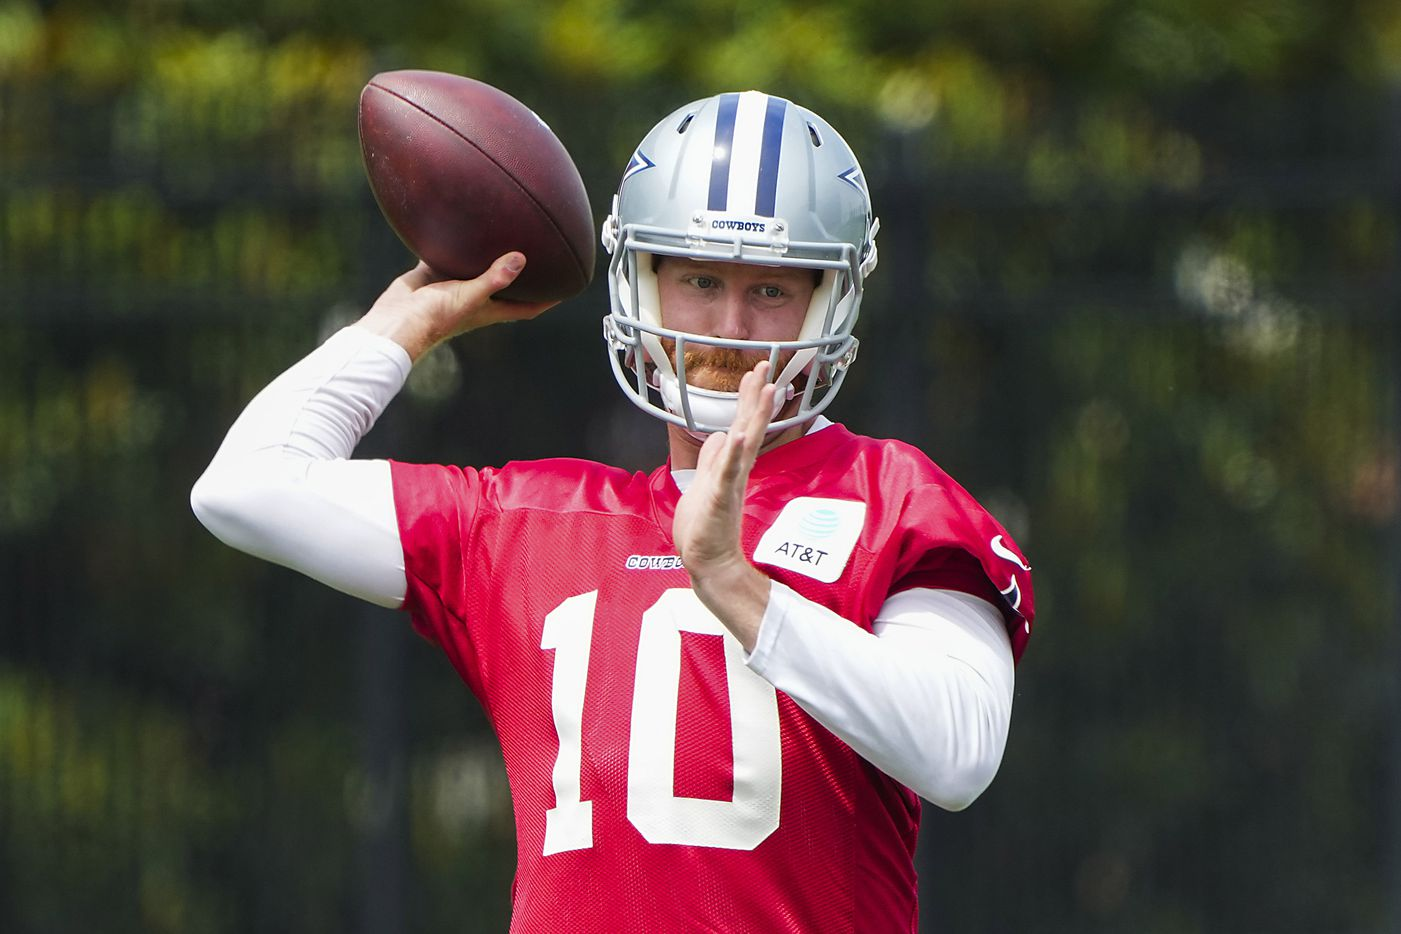 Dallas Cowboys quarterback Cooper Rush throws a pass during a minicamp practice at The Star on Tuesday, June 8, 2021, in Frisco. (Smiley N. Pool/The Dallas Morning News)